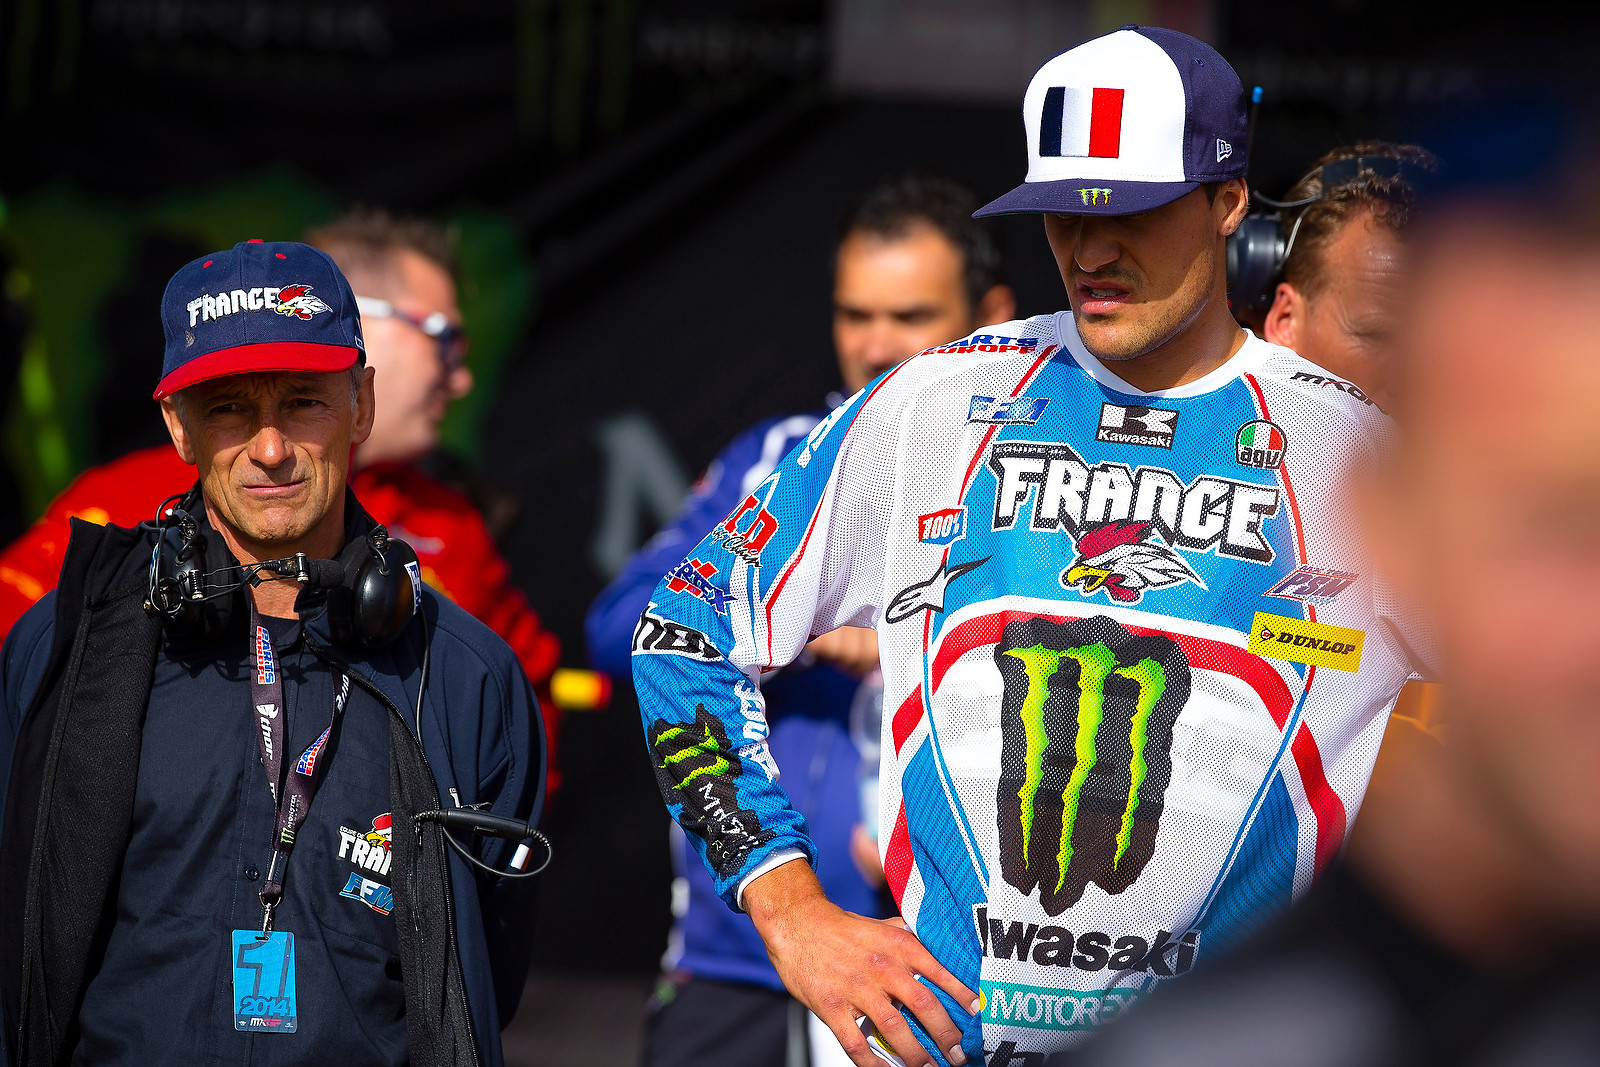 France - kardy - Motocross Pictures - Vital MX